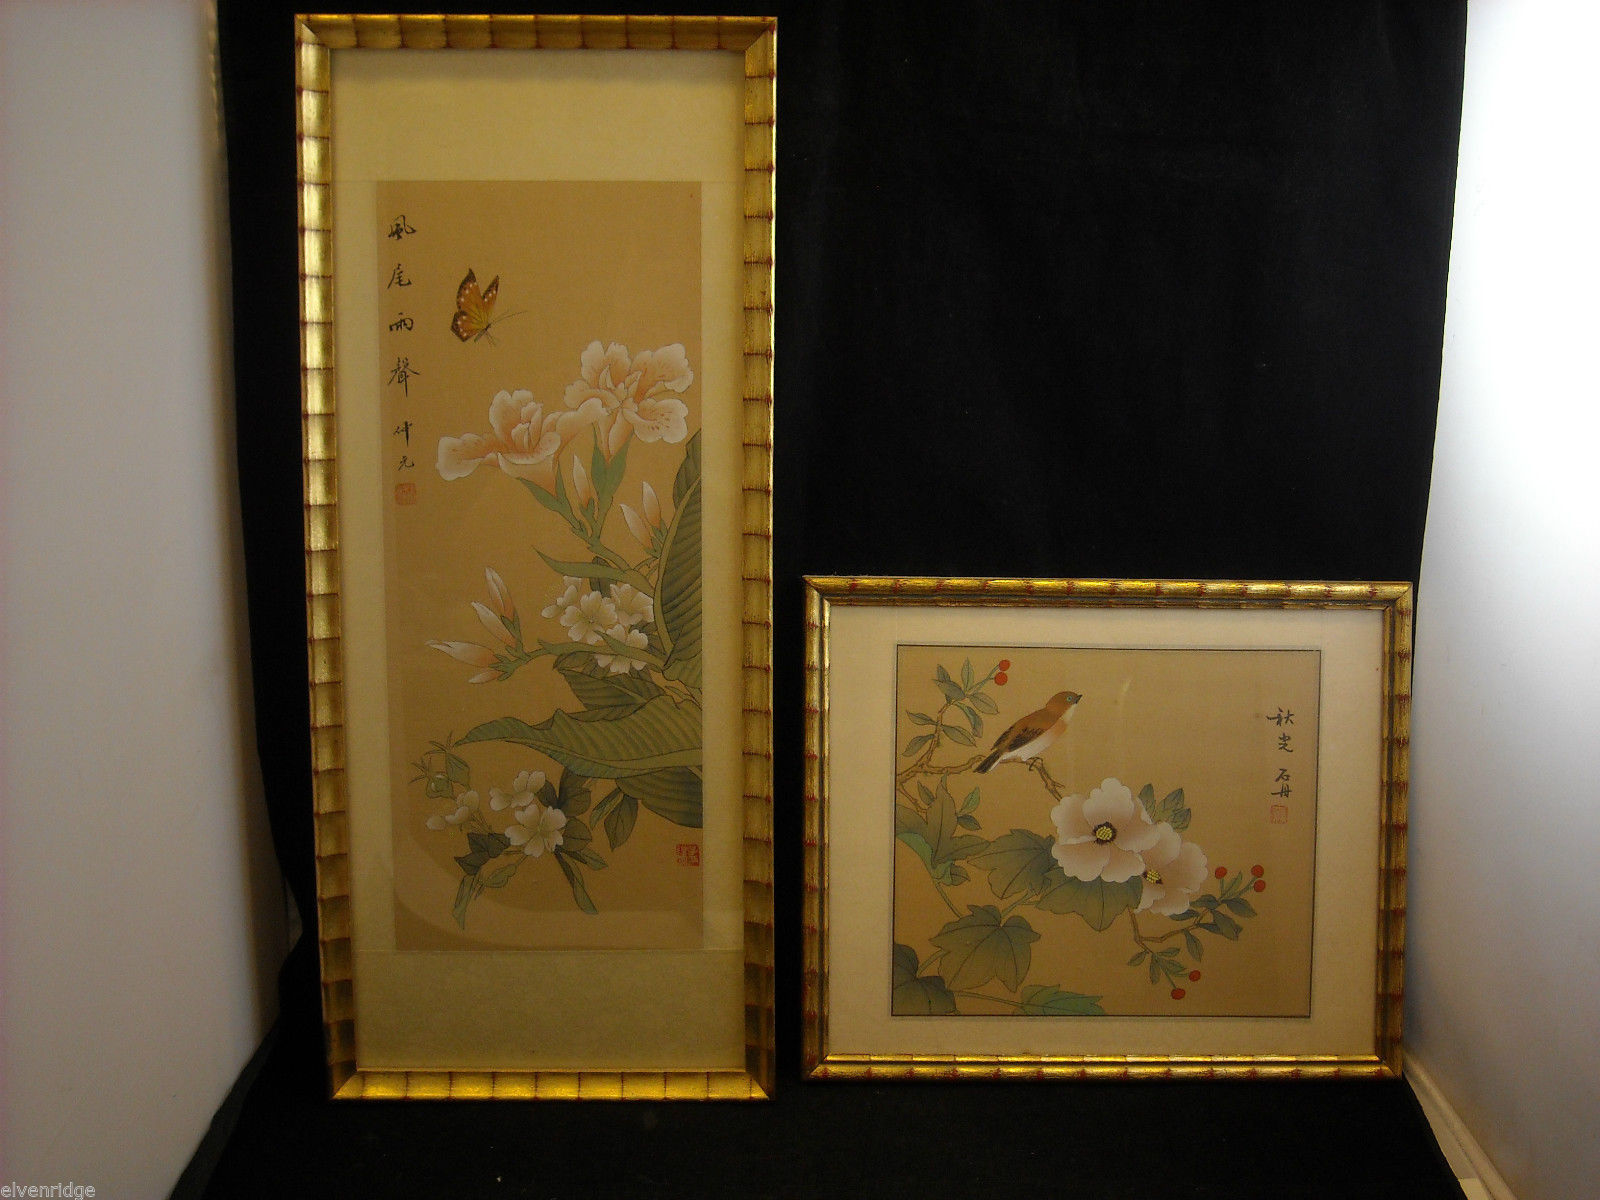 Set of 2 Asian Prints with Character Sayings